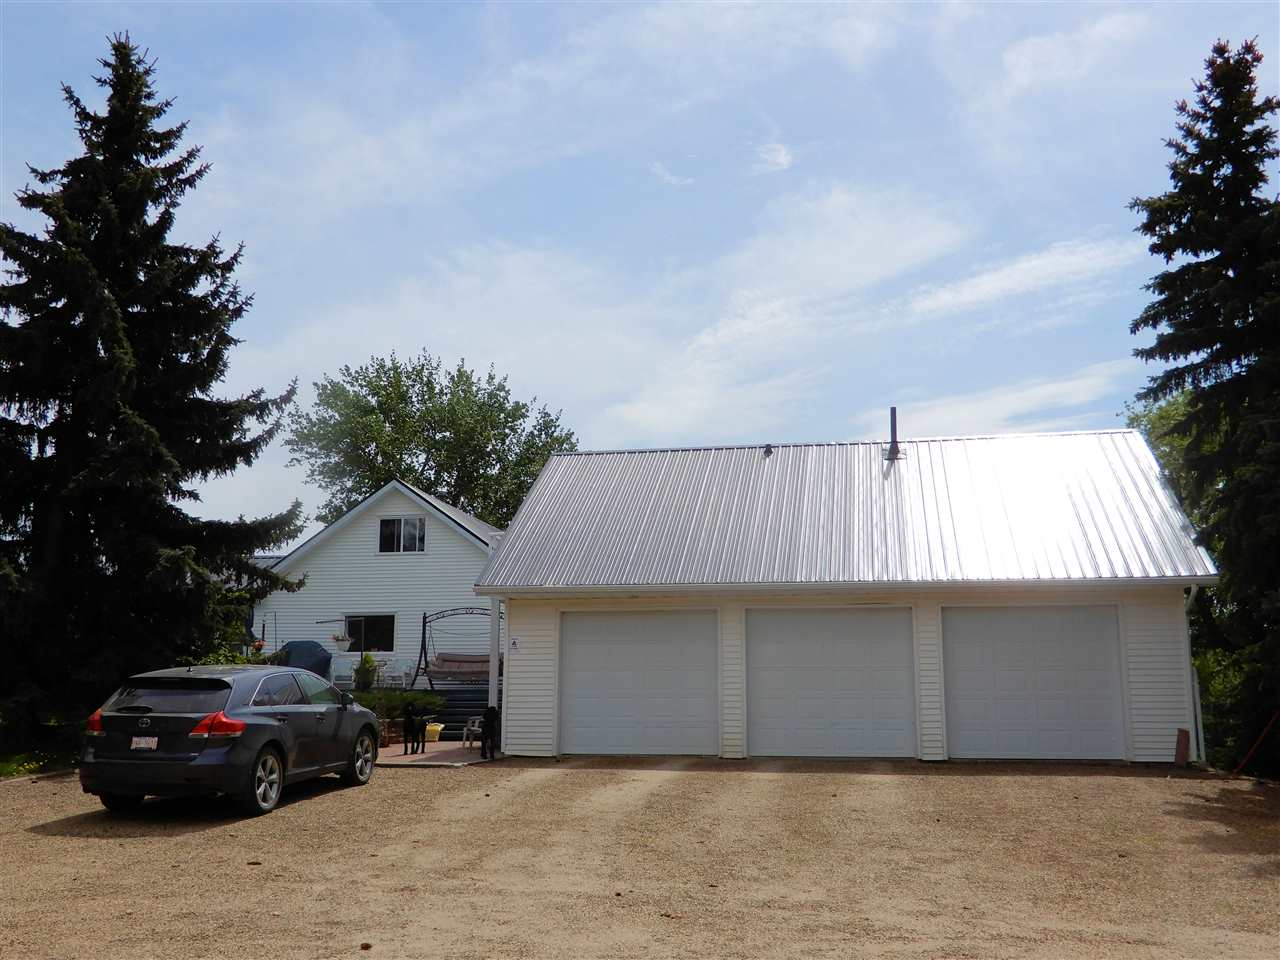 Photo 2: 55109 Range Road 260: Rural Sturgeon County House for sale : MLS® # E4068603